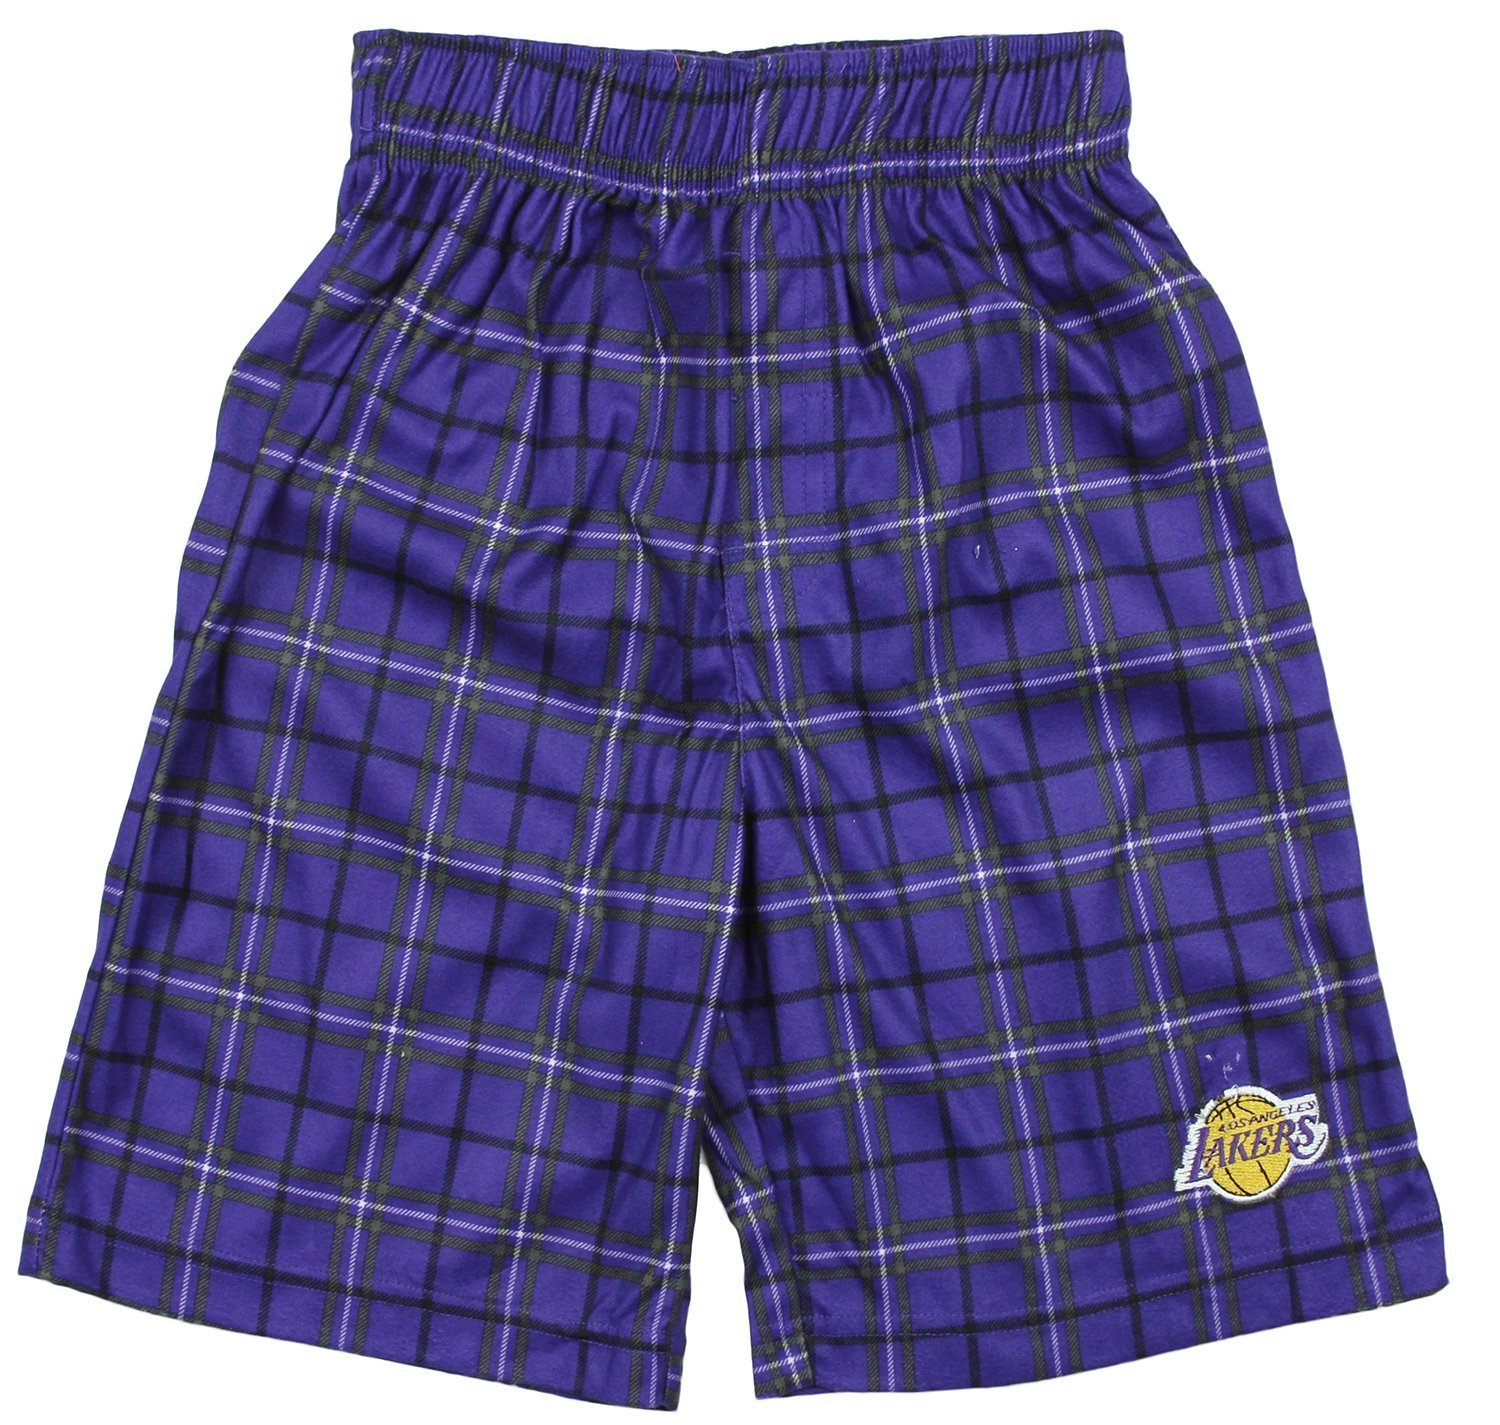 NBA Basketball Toddlers Los Angeles Lakers Plaid Boxer Shorts Purple by